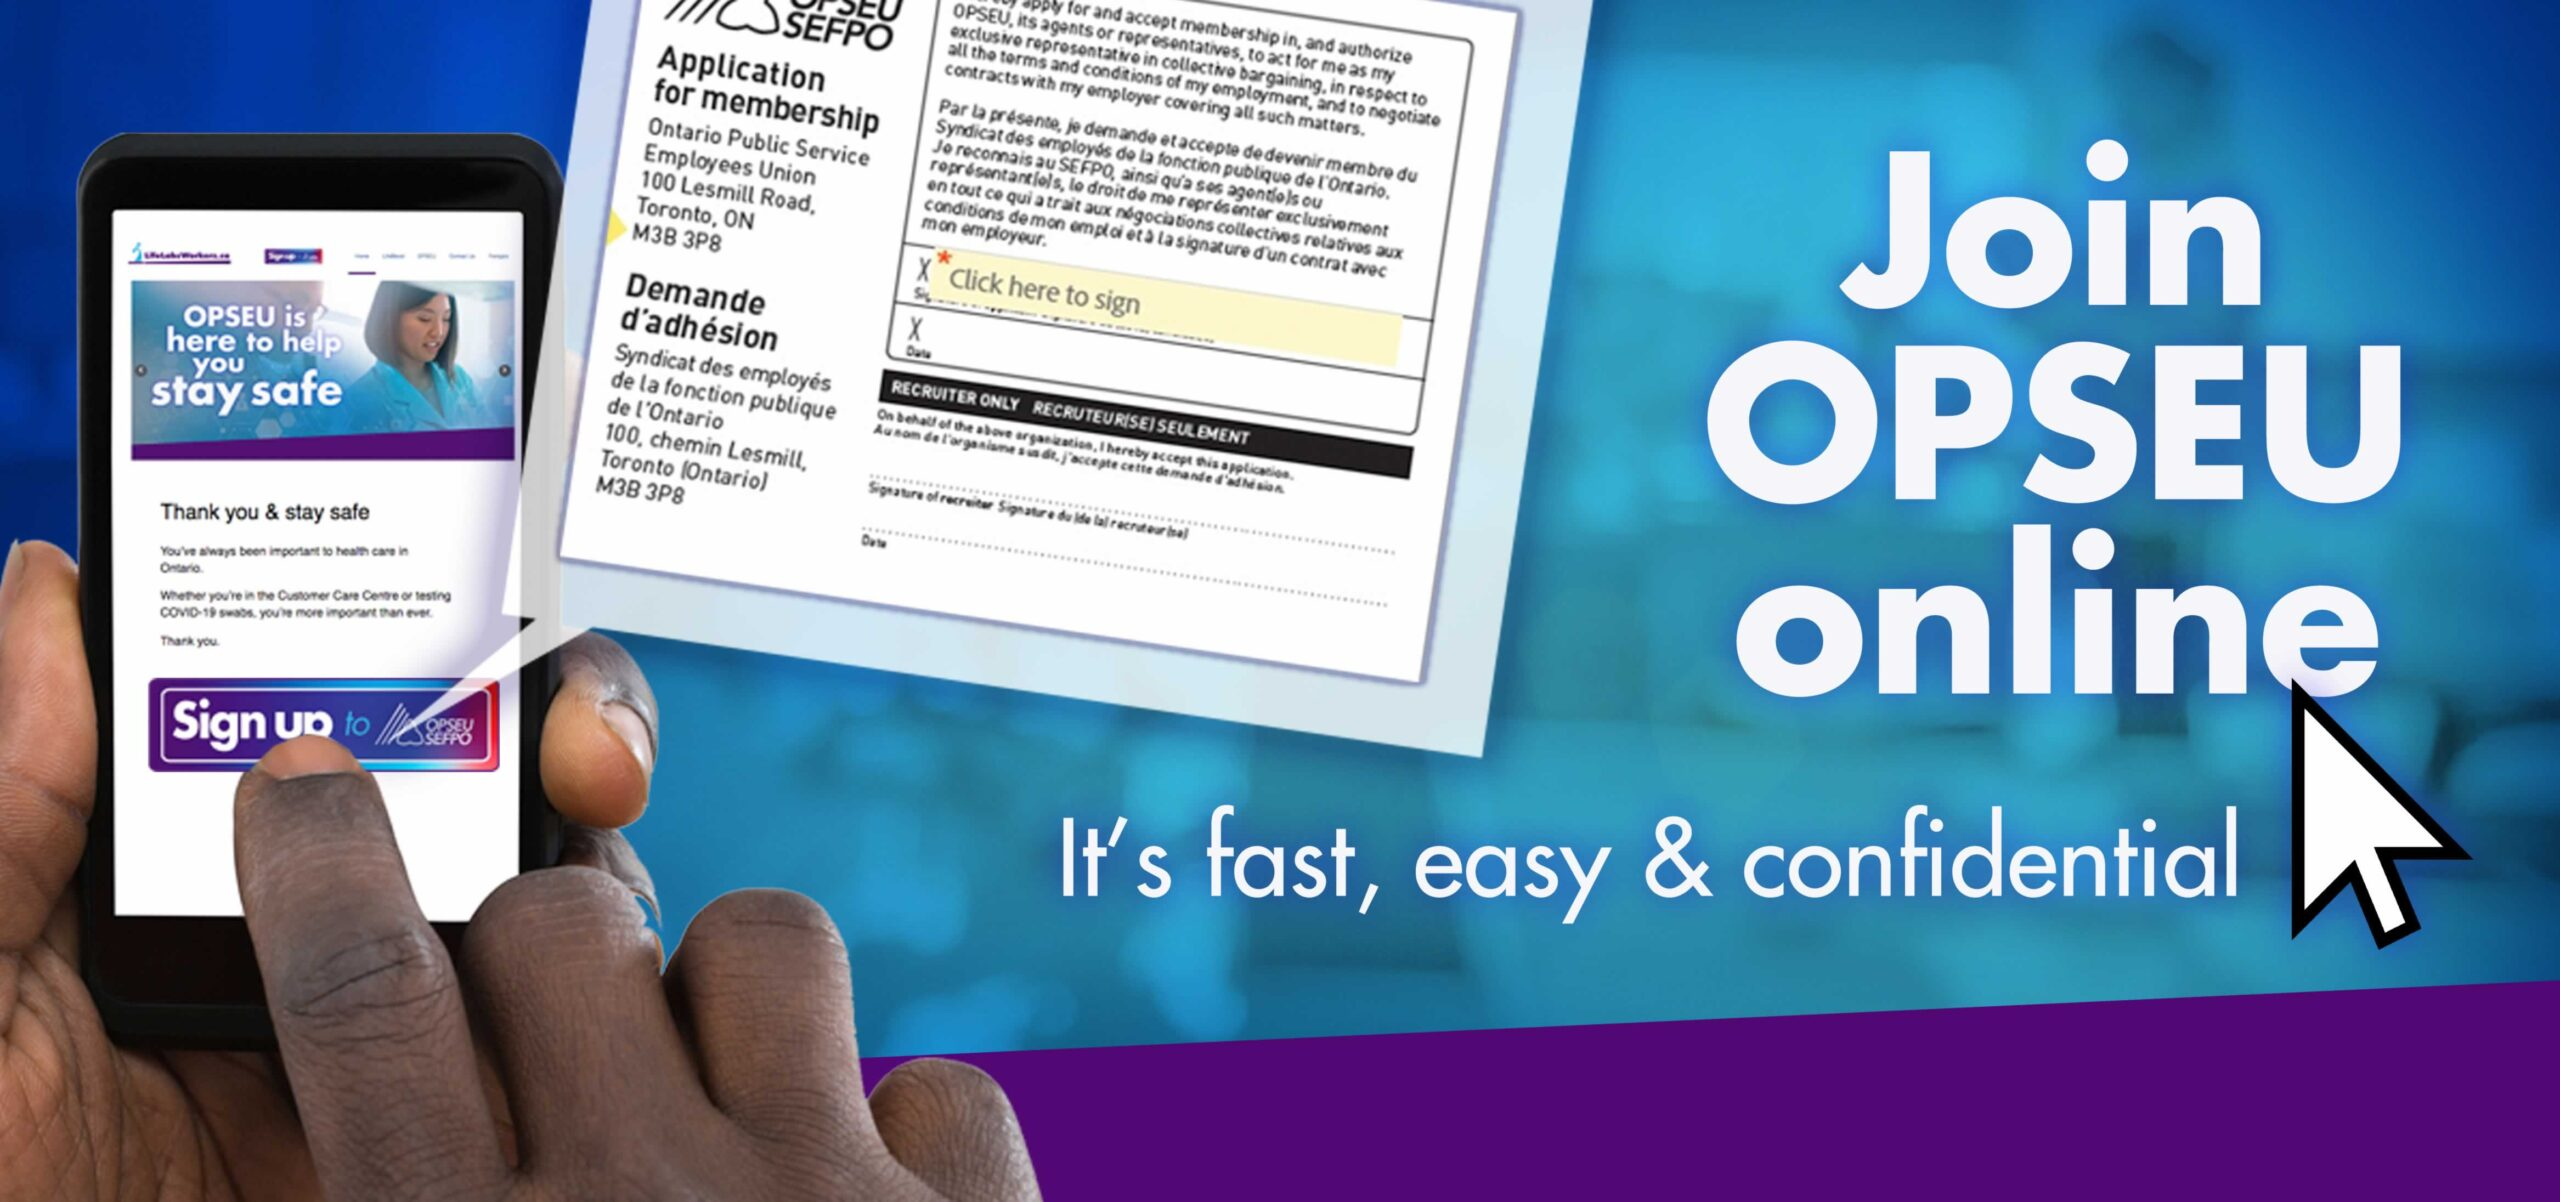 Join OPSEU online, it's fast and easy